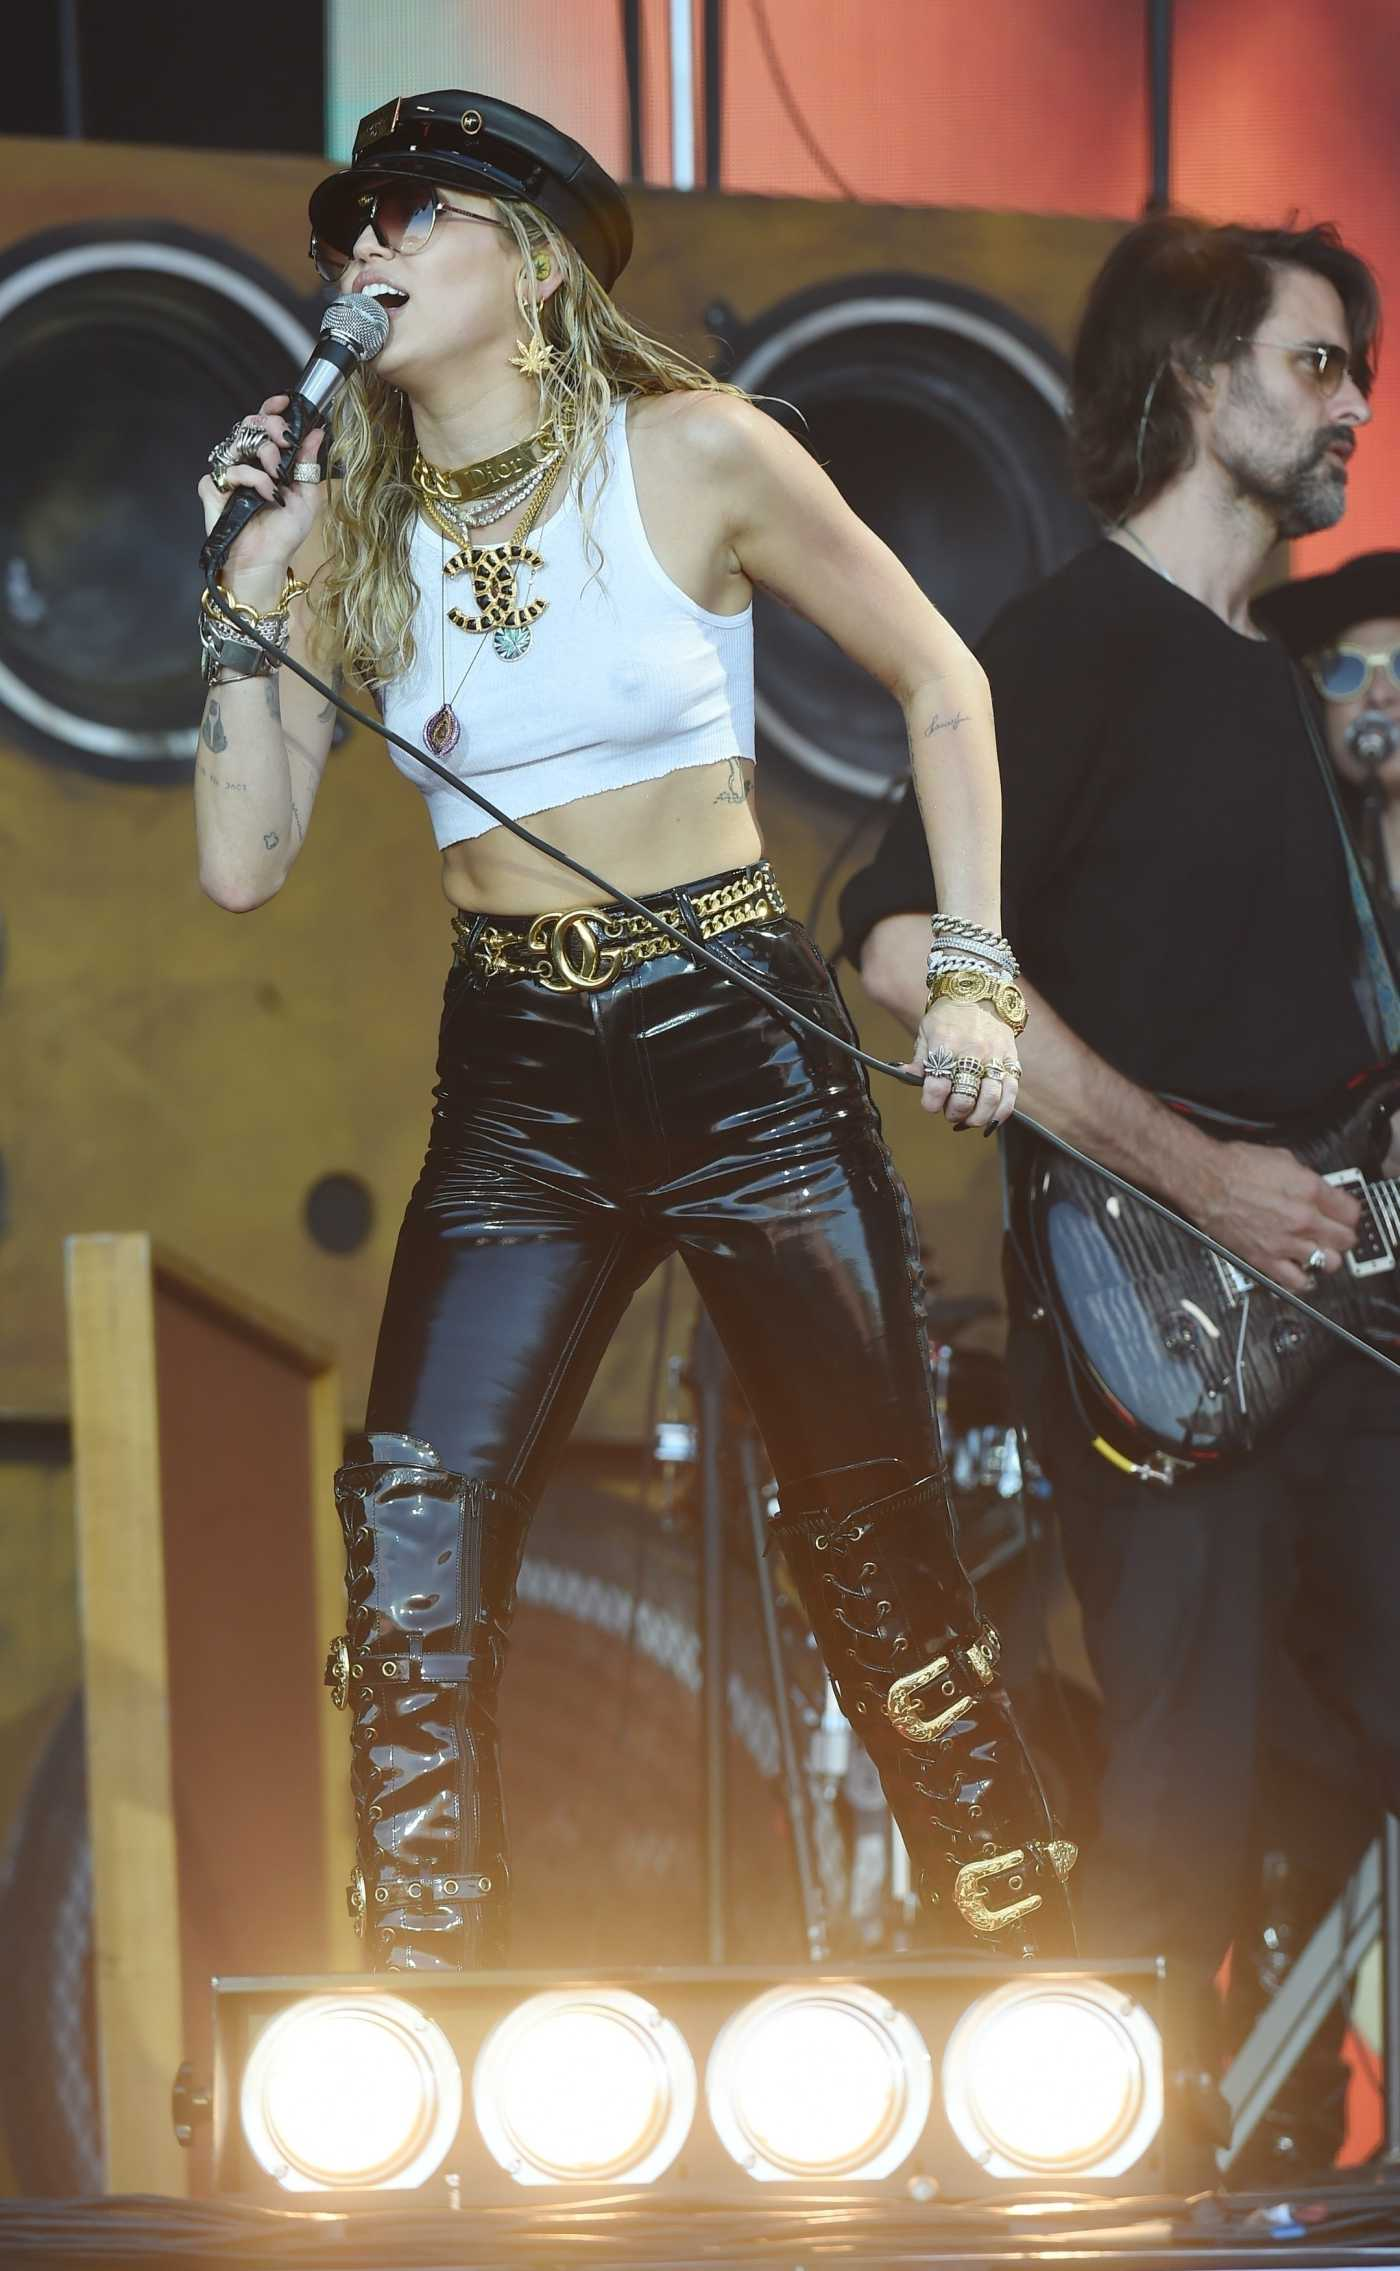 Miley Cyrus Performs on the Pyramid Stage During 2019 Glastonbury Festival in Glastonbury 06/30/2019